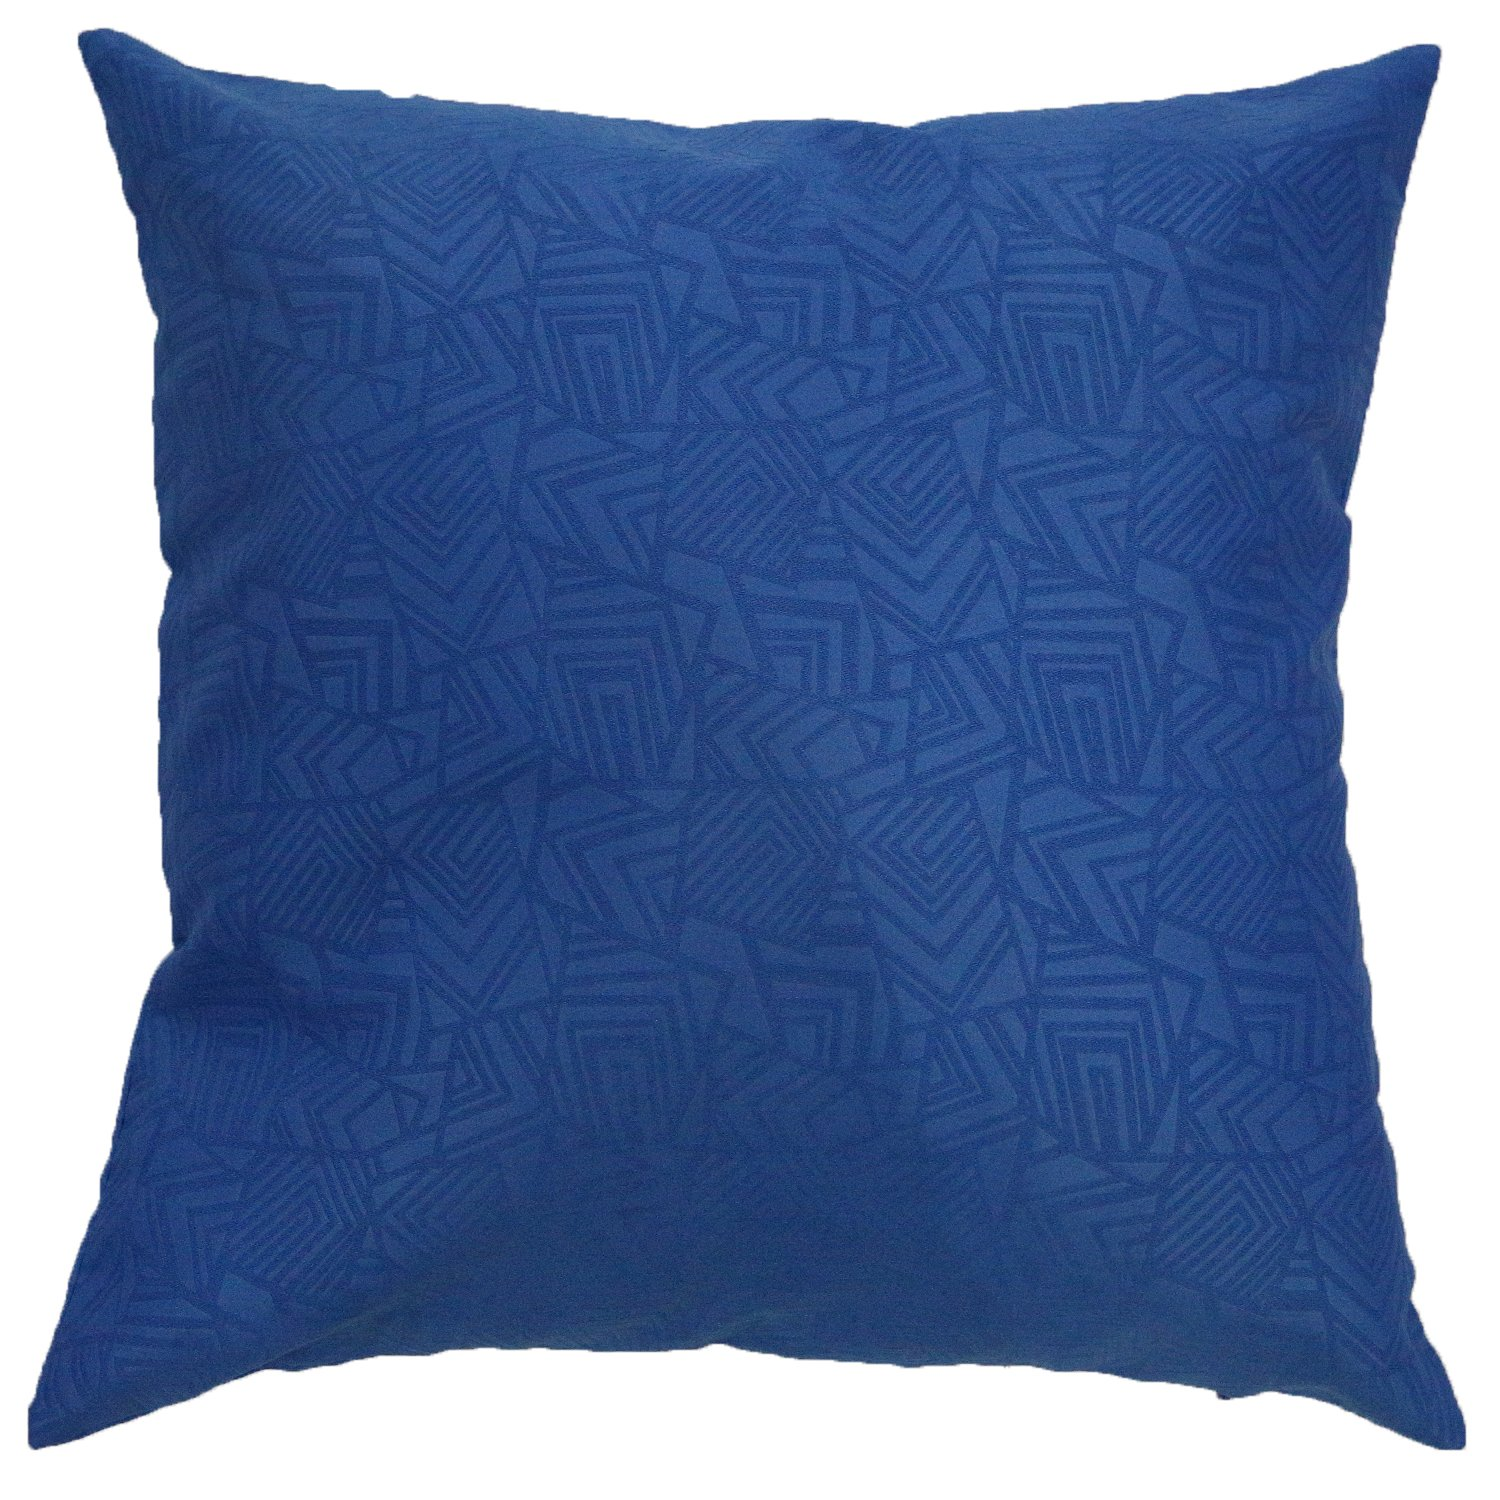 Deconovo Faux Suede Embossed Geometric Decorative Square Throw Pillow Case Cushion Cover with Lining for Chair CS24270